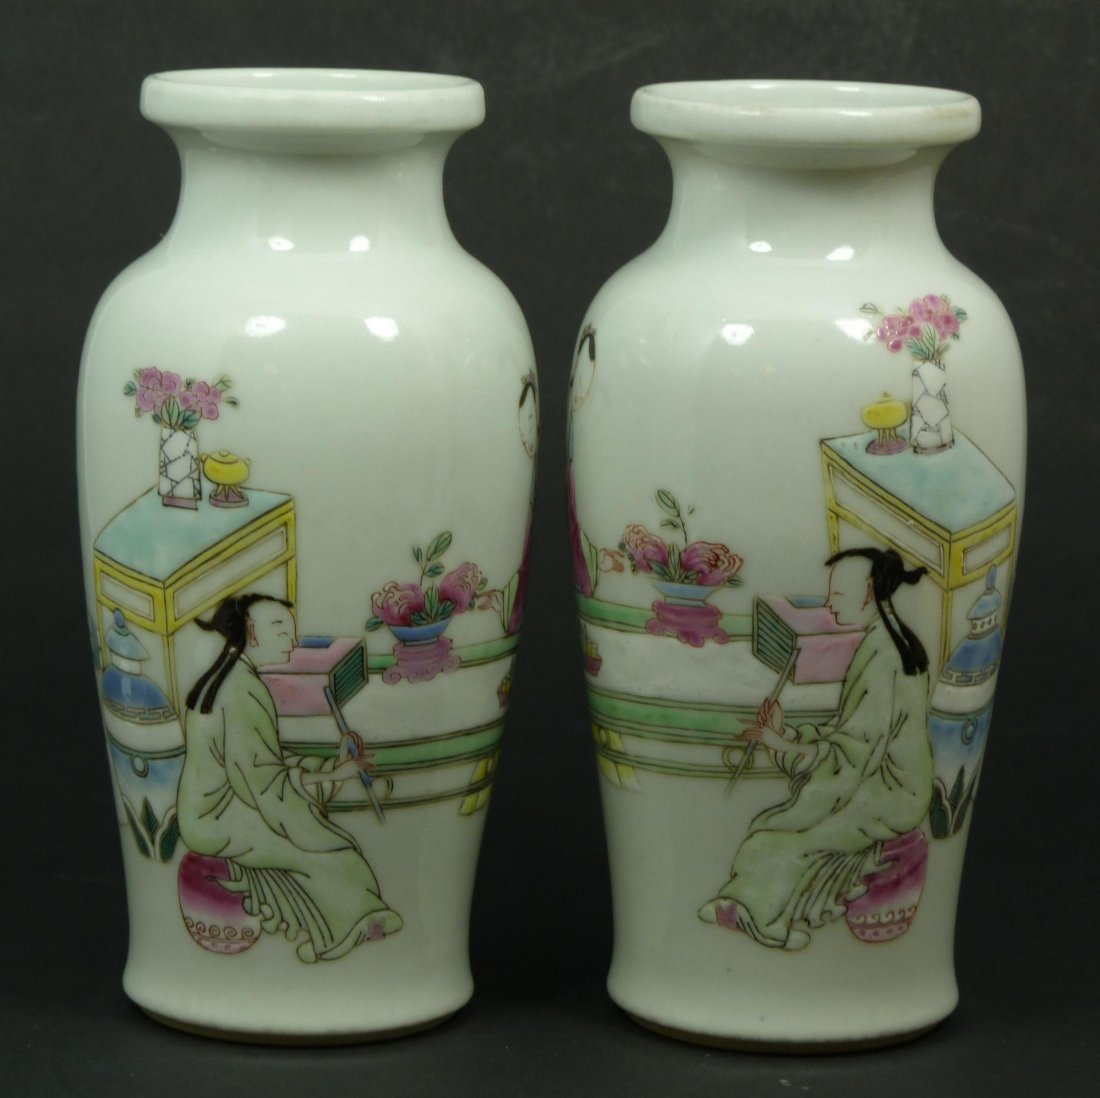 509: Pr 18th C CHINESE PORCELAIN MAIDENS VASES